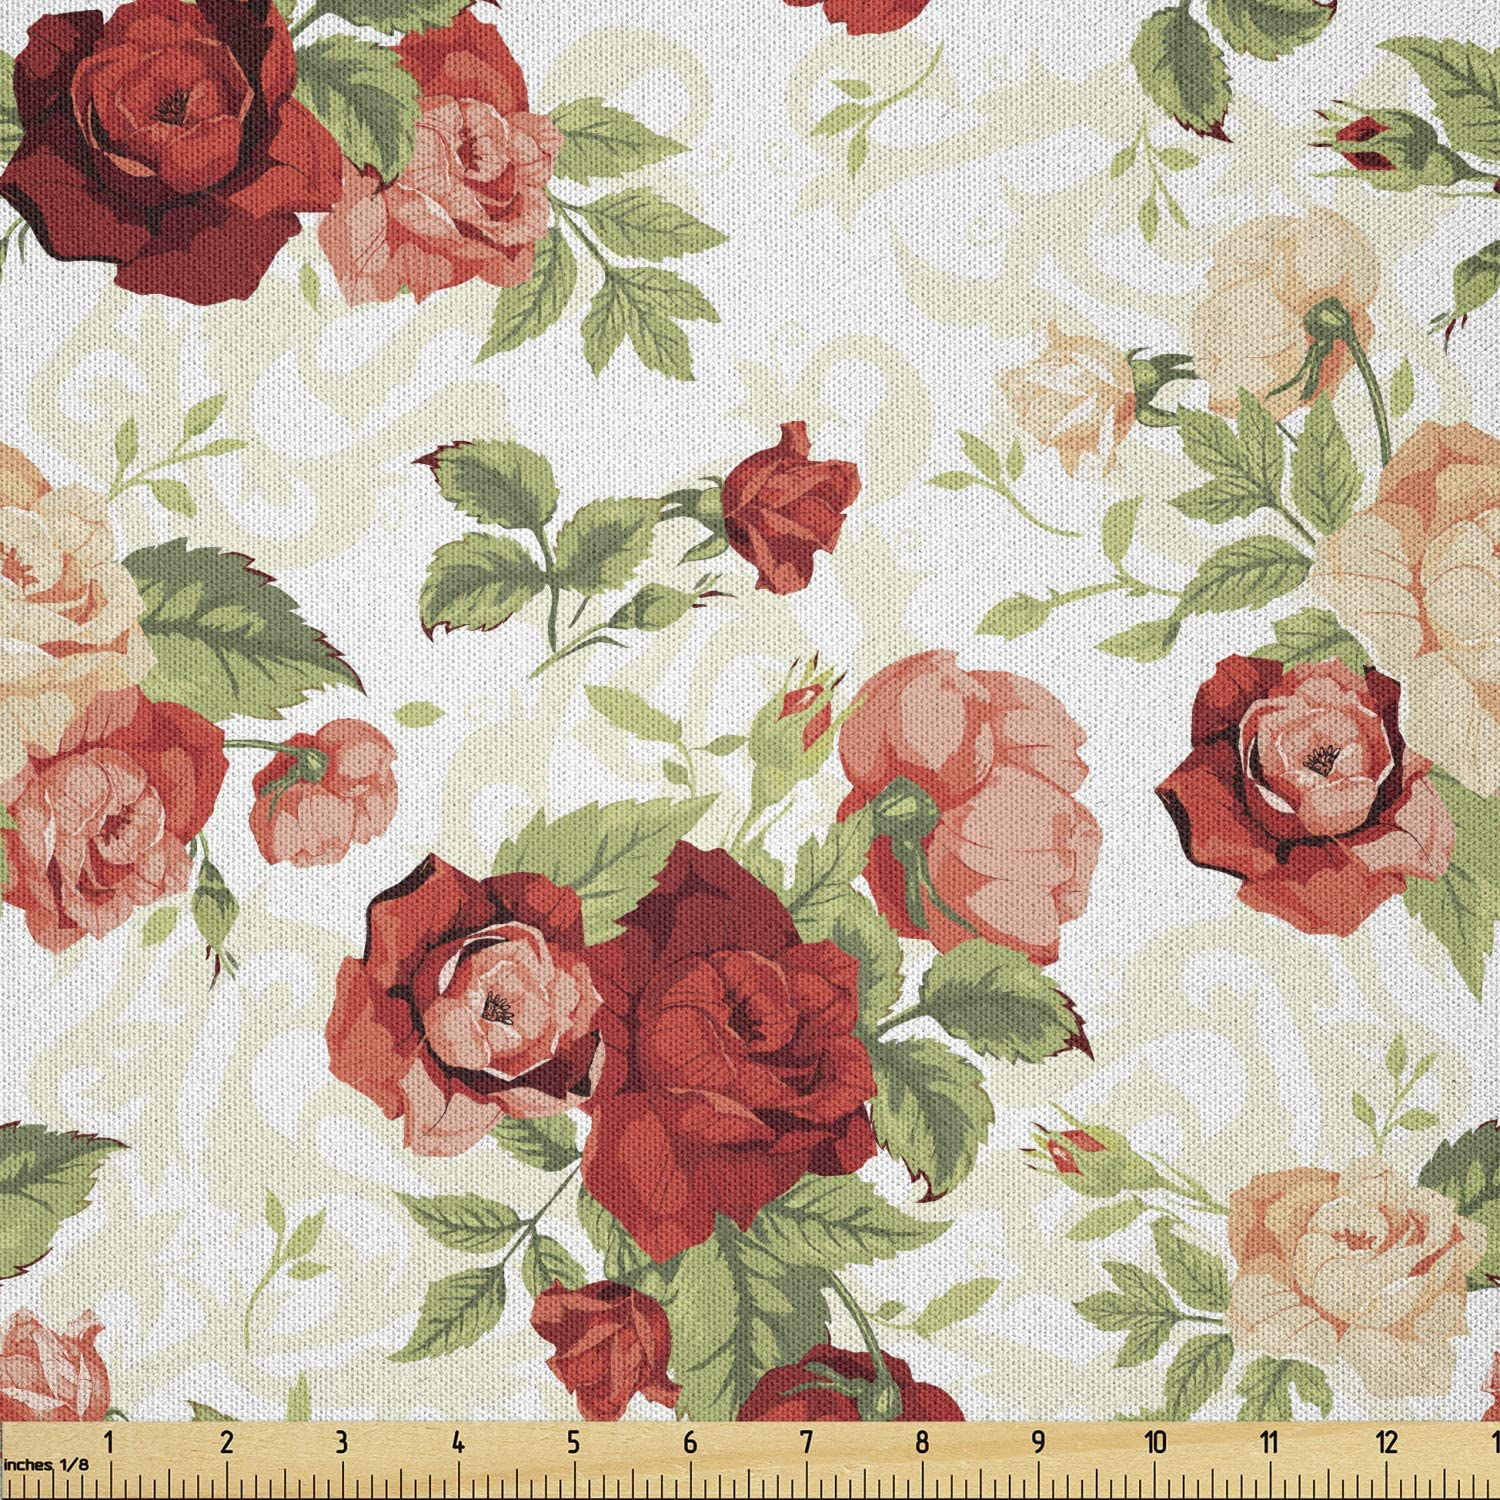 55 Inches Wide Roses By the Yard 96829-1 Eco-friendly Laminated Waterproof Fabric Non-glossy TPU Coating Flowers Ivory Pink or Blue